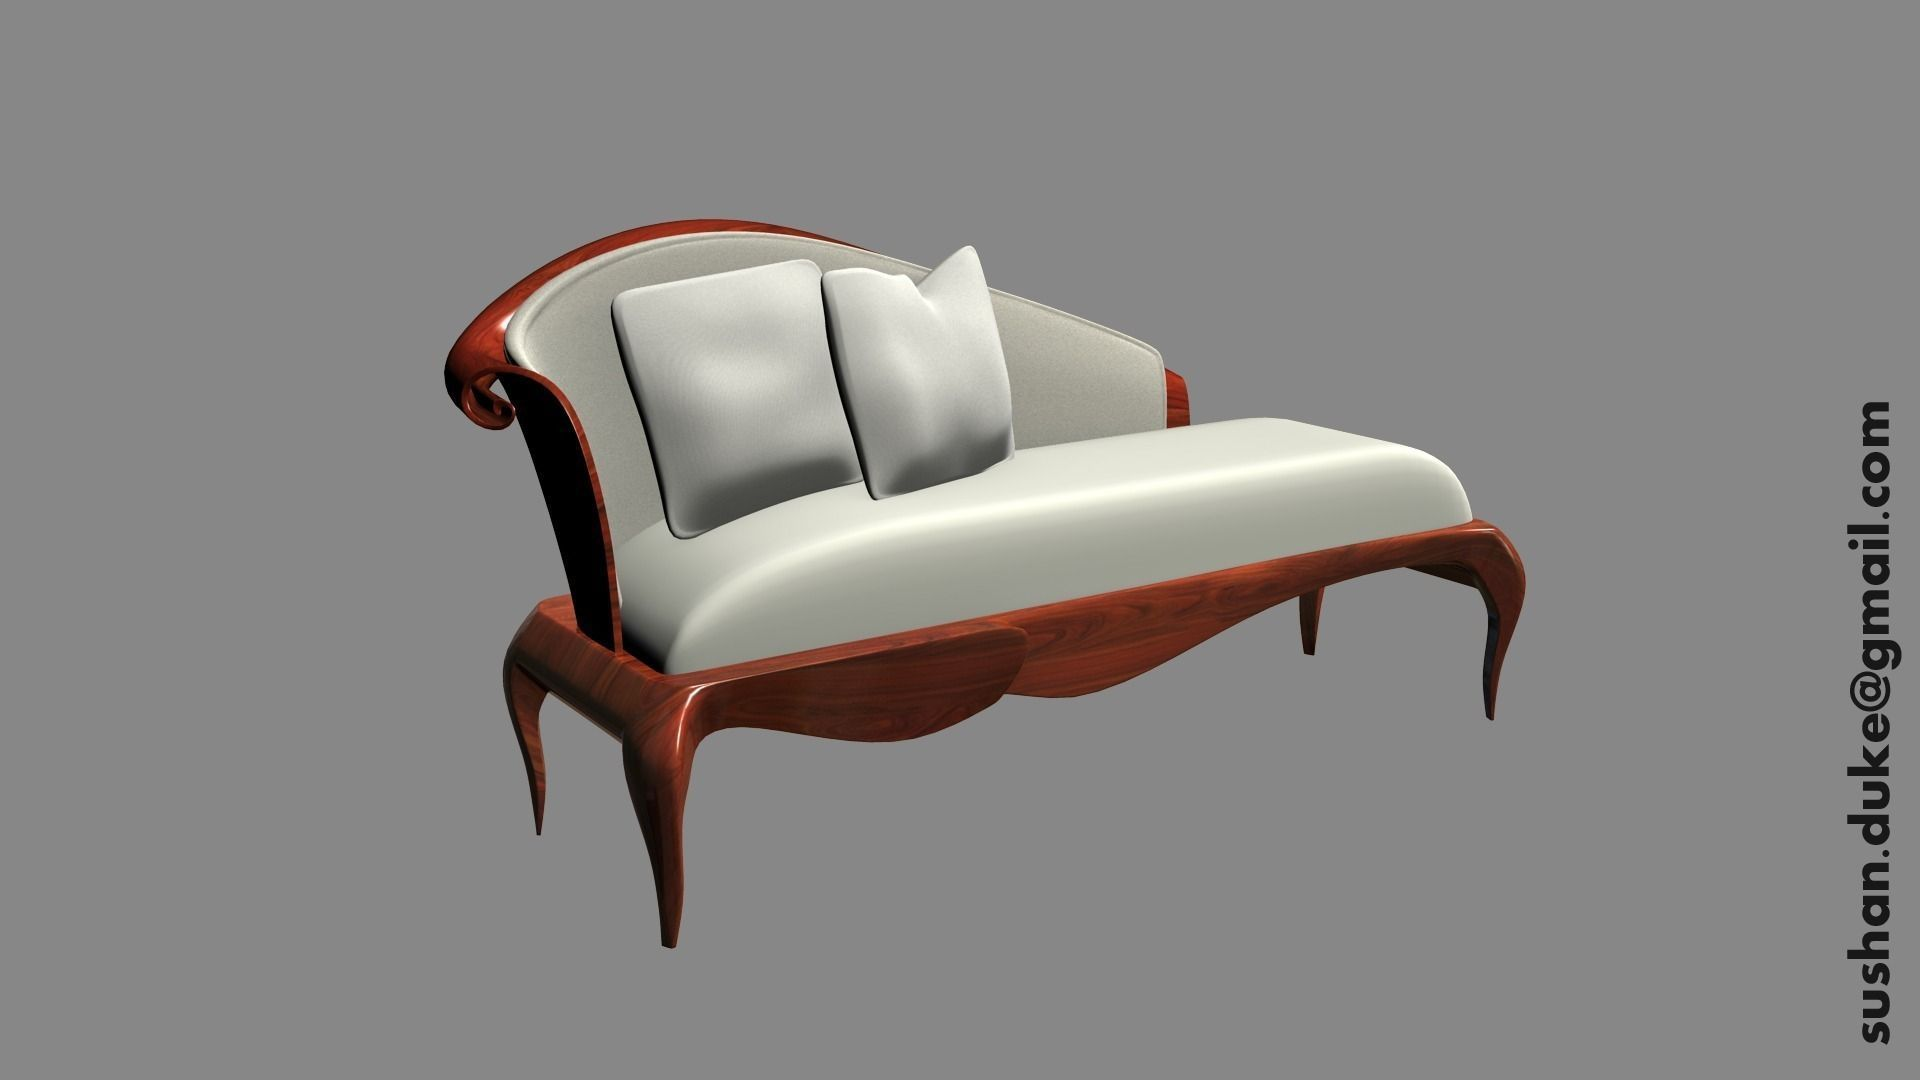 Chaise textured 3d model obj ma mb for Chaise modele